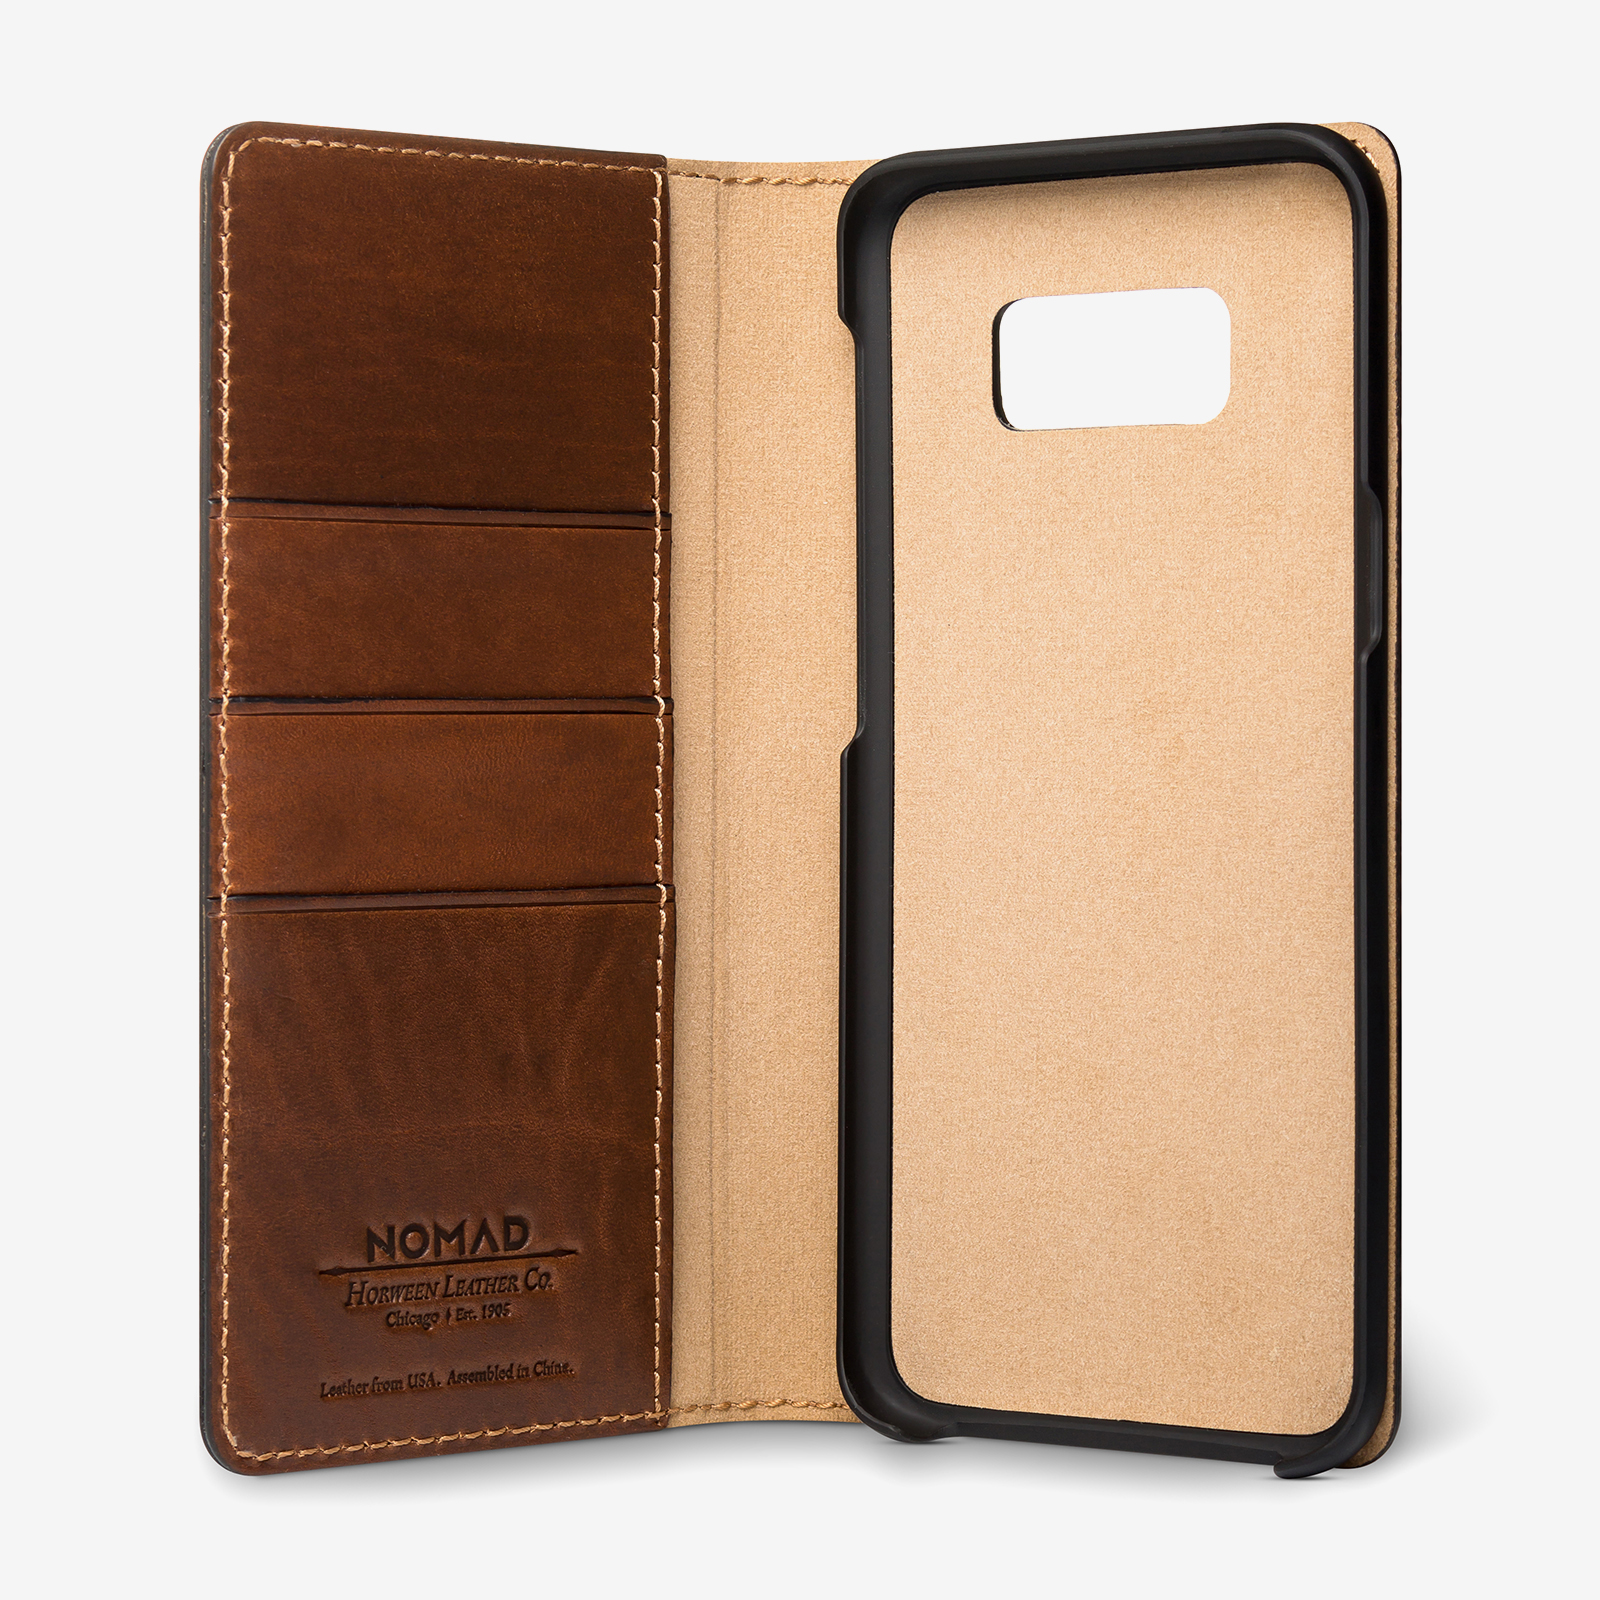 Phone case product photography